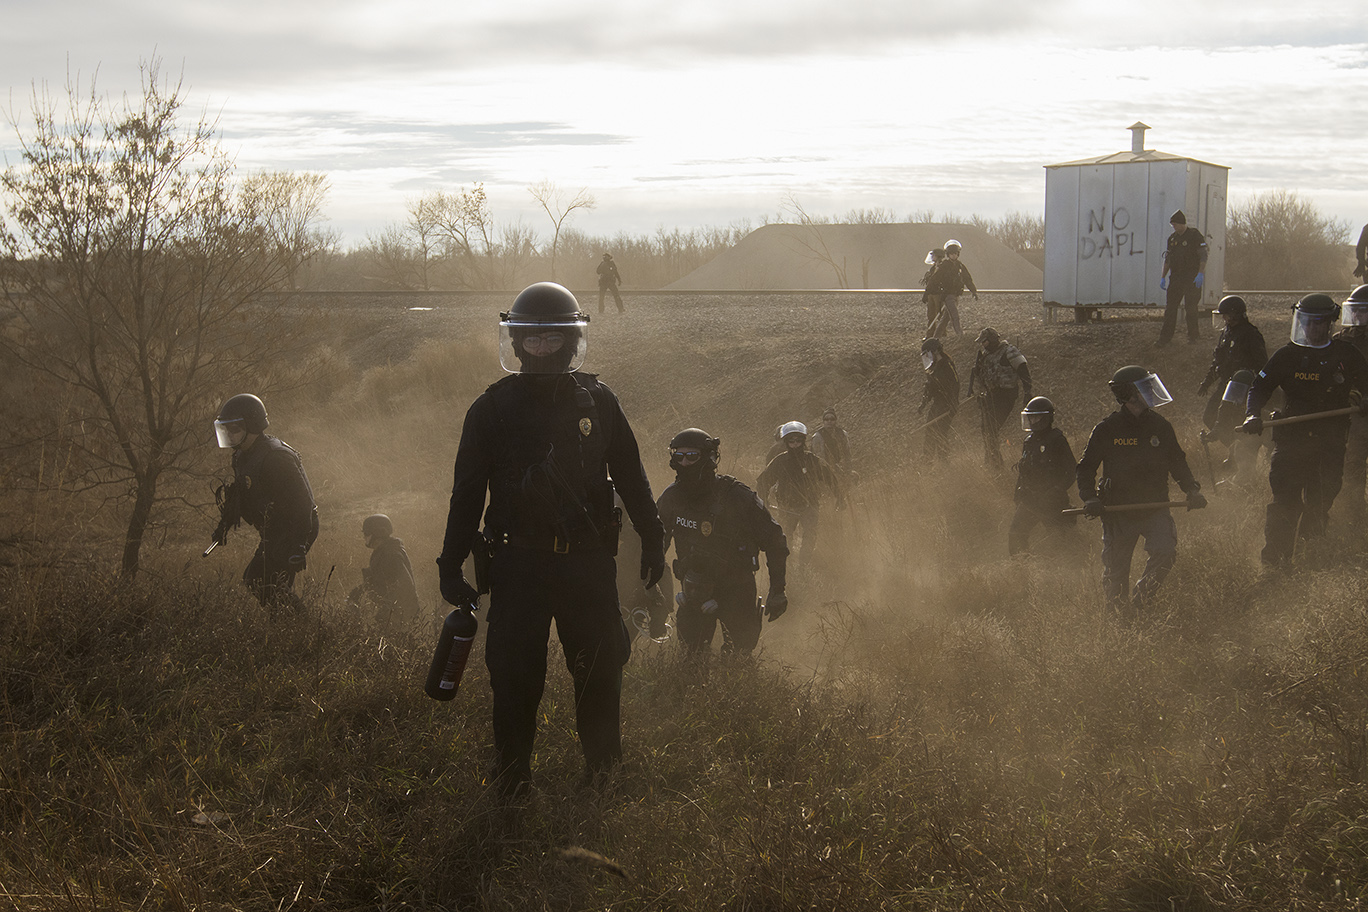 Contemporary Issues - First Prize, Stories: Riot police clear marchers from a secondary road outside a Dakota Access Pipeline (DAPL) worker camp using rubber bullets, pepper spray, tasers and arrests. In other incidents they've employed militarized vehicles, water canons, tear gas and have been accused of using percussion grenades. For nearly 10 months, members of the Standing Rock Sioux tribe and their allies camped out in opposition to the Dakota Access Pipeline crossing their territory and threatening their water supply. The estimated $3.78 billion project, backed by Energy Transfer Partners, is nearly complete, covering almost 1,172 miles. In military vehicles and body armor, police used tear gas, pepper spray, rubber bullets, and water cannons against the protesters, and have been accused of inhumane treatment of arrestees. (Amber Bracken)